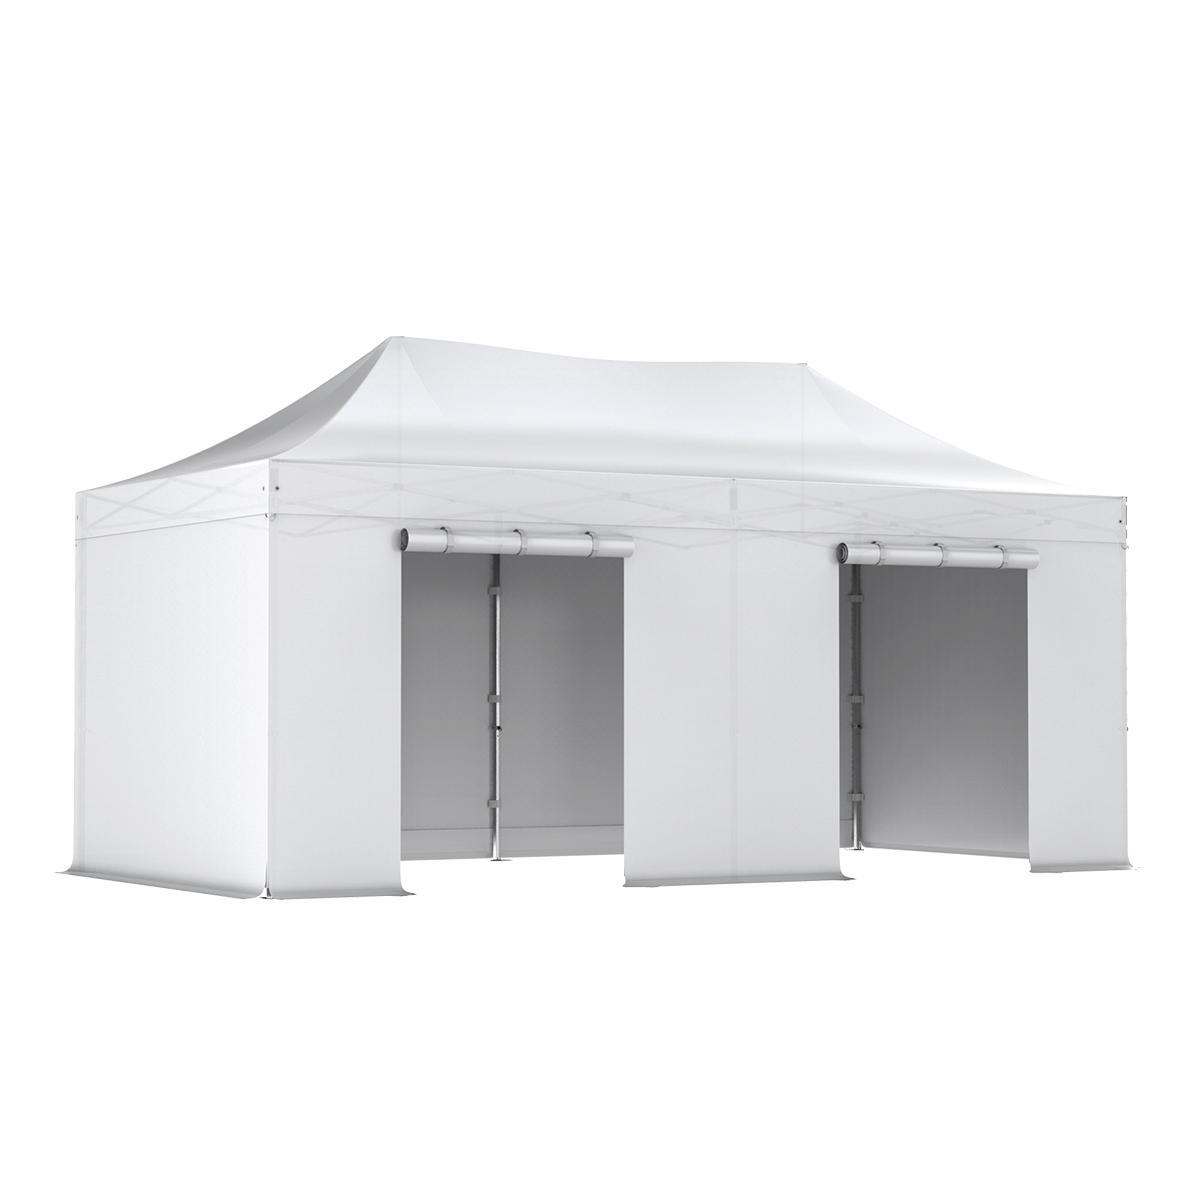 barnum pliant pro 3x6 pack complet alu 50 pvc 520g m blanc seulement sur. Black Bedroom Furniture Sets. Home Design Ideas